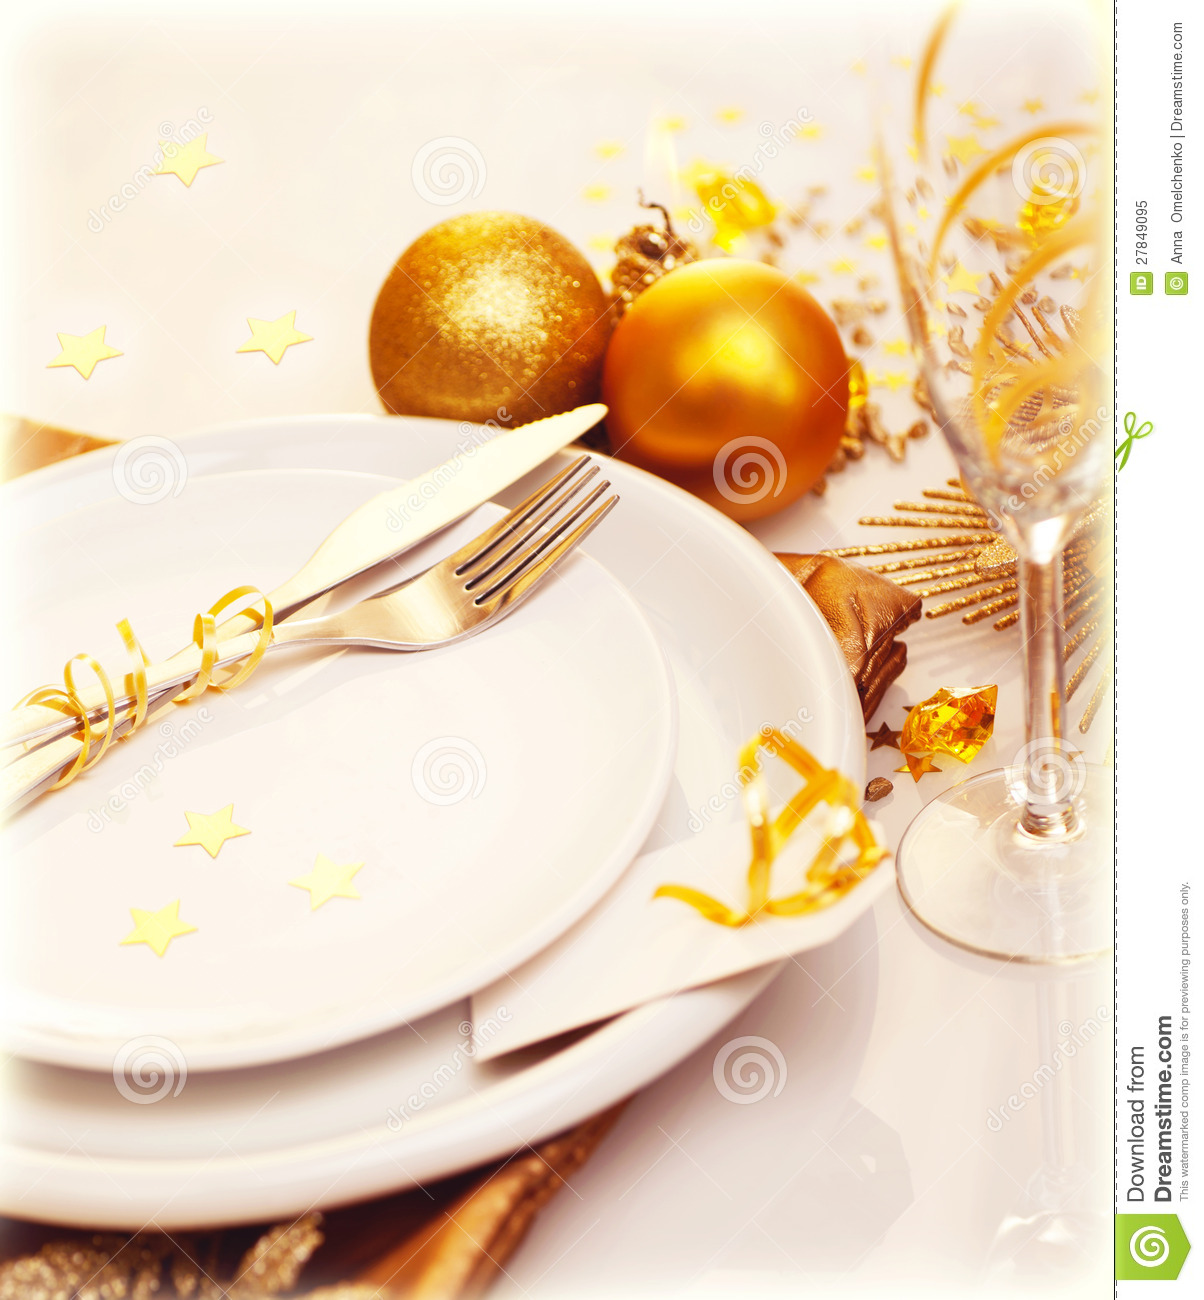 #BD4703 Luxury Christmas Table Decoration Royalty Free Stock Photo  5283 decoration table noel orange 1204x1300 px @ aertt.com